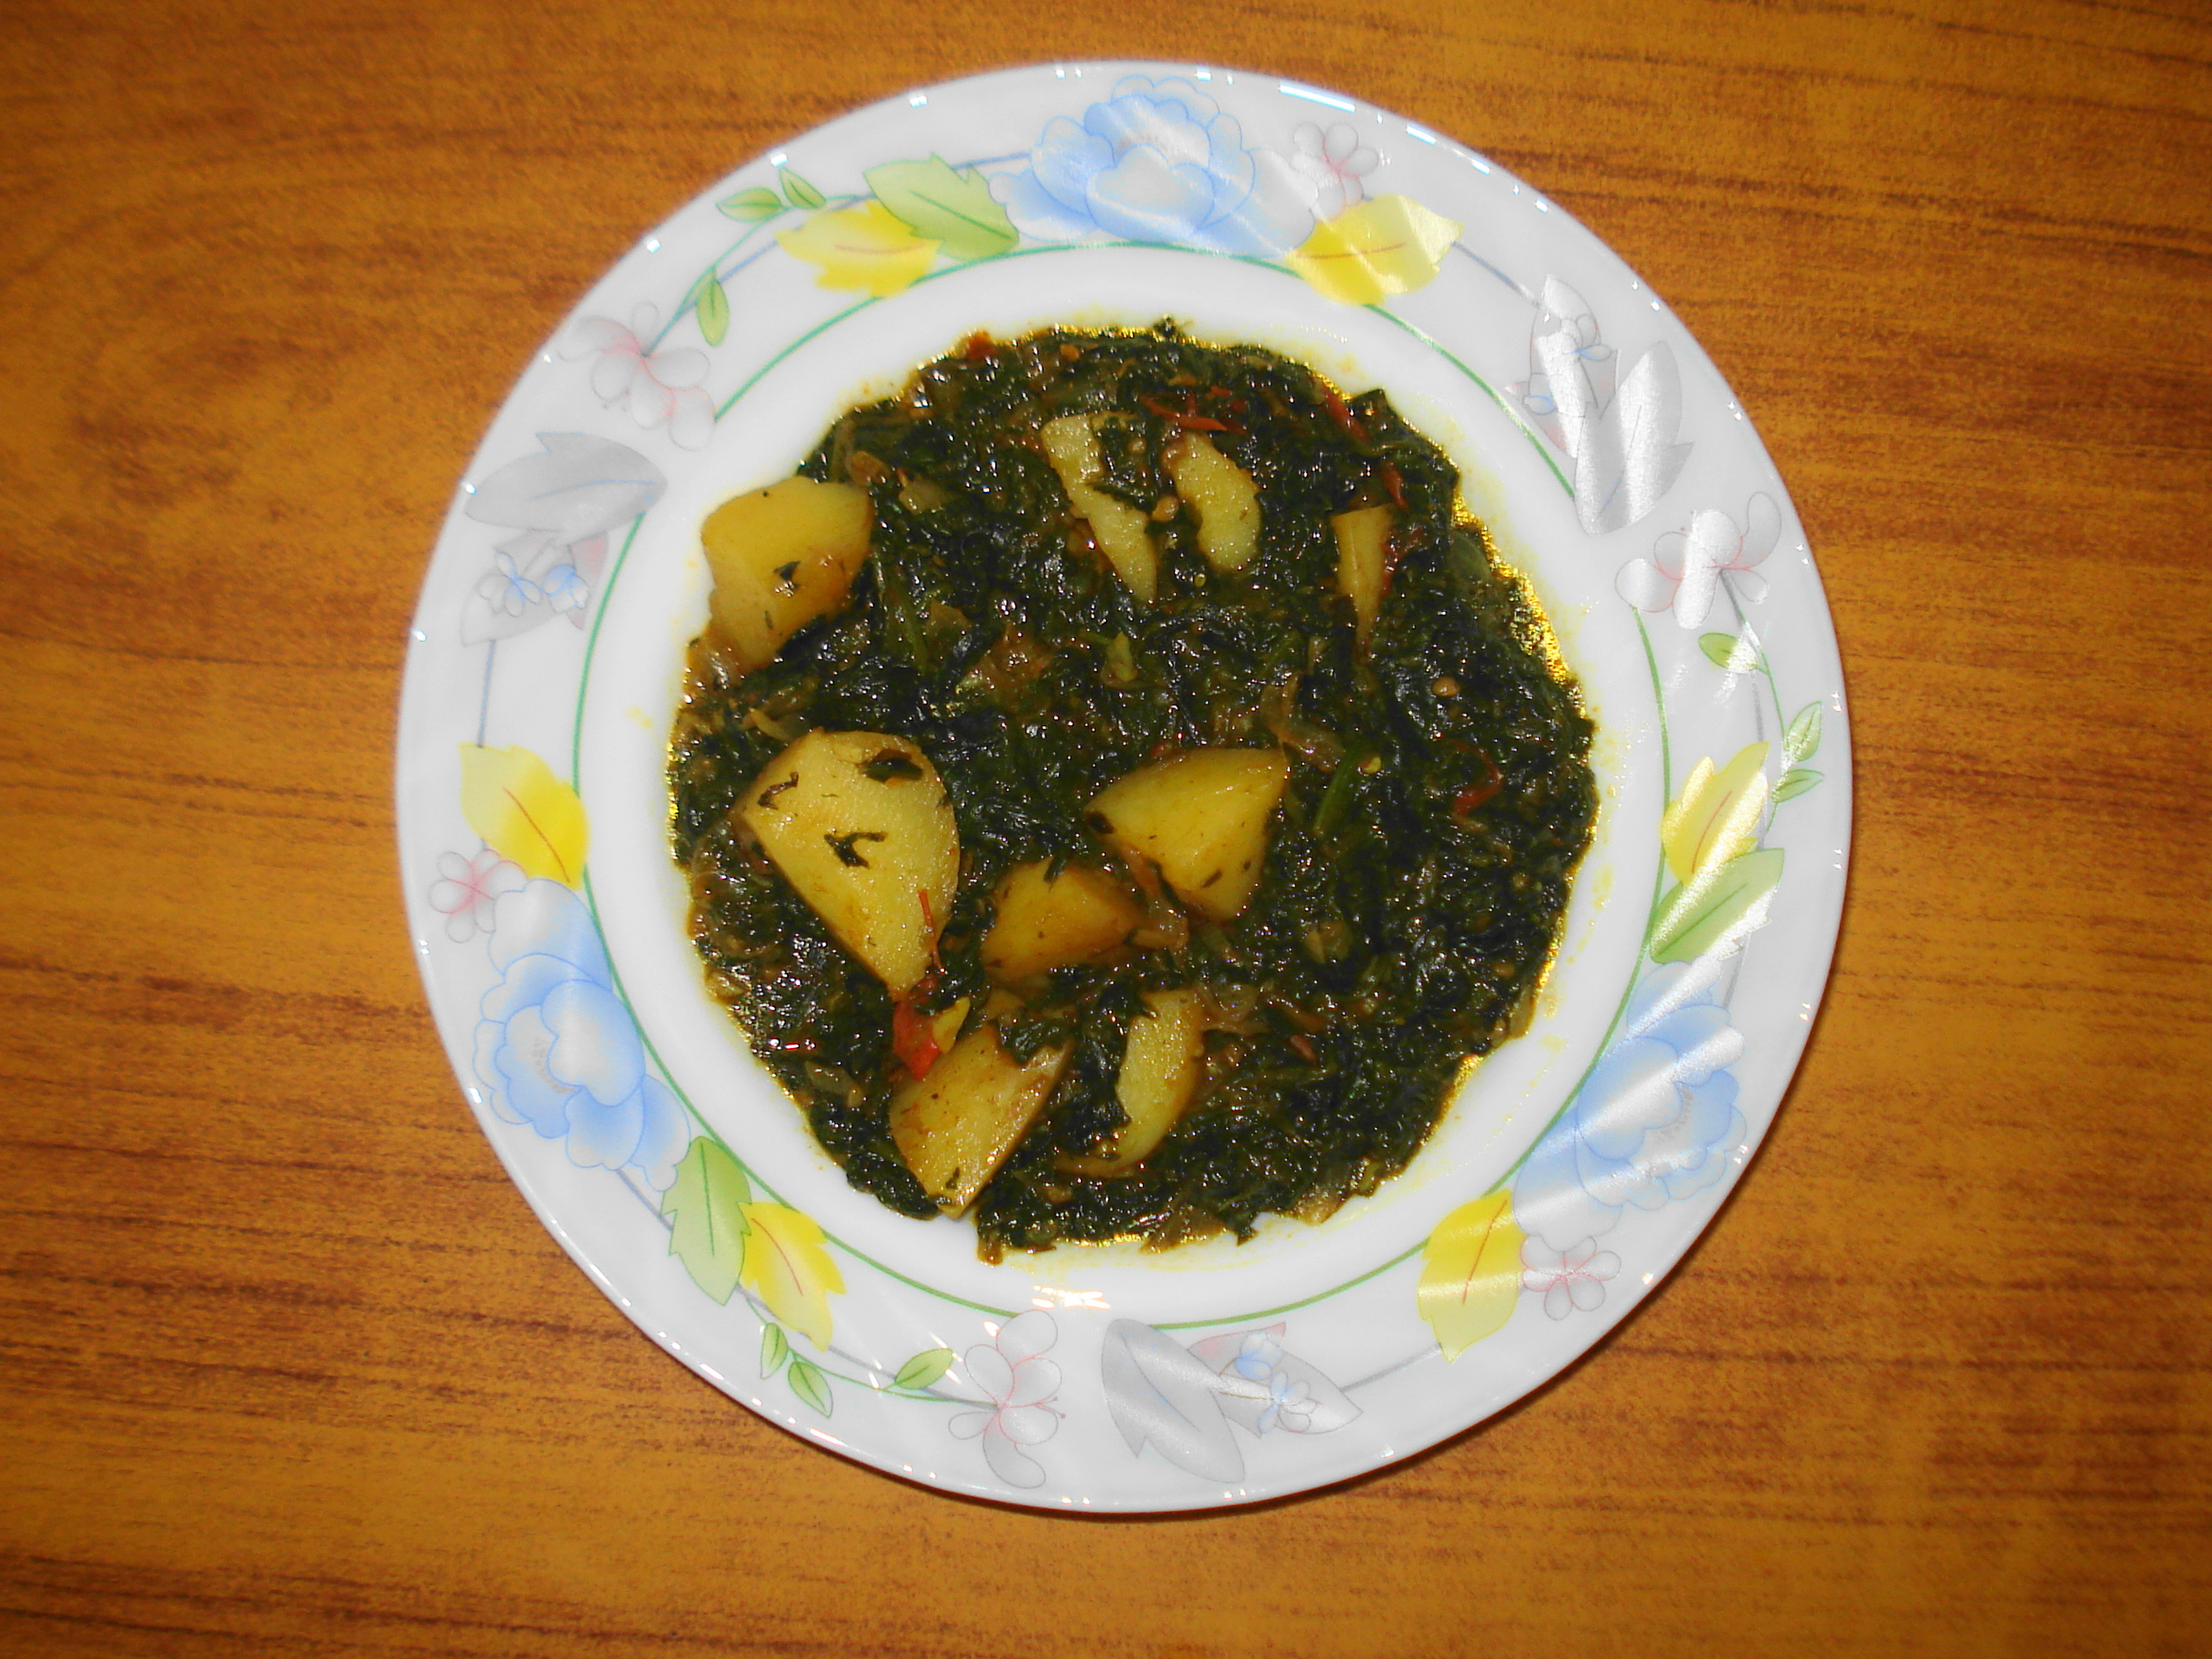 File:Aloo Palak (Spinach with Potatoes).JPG - Wikimedia Commons